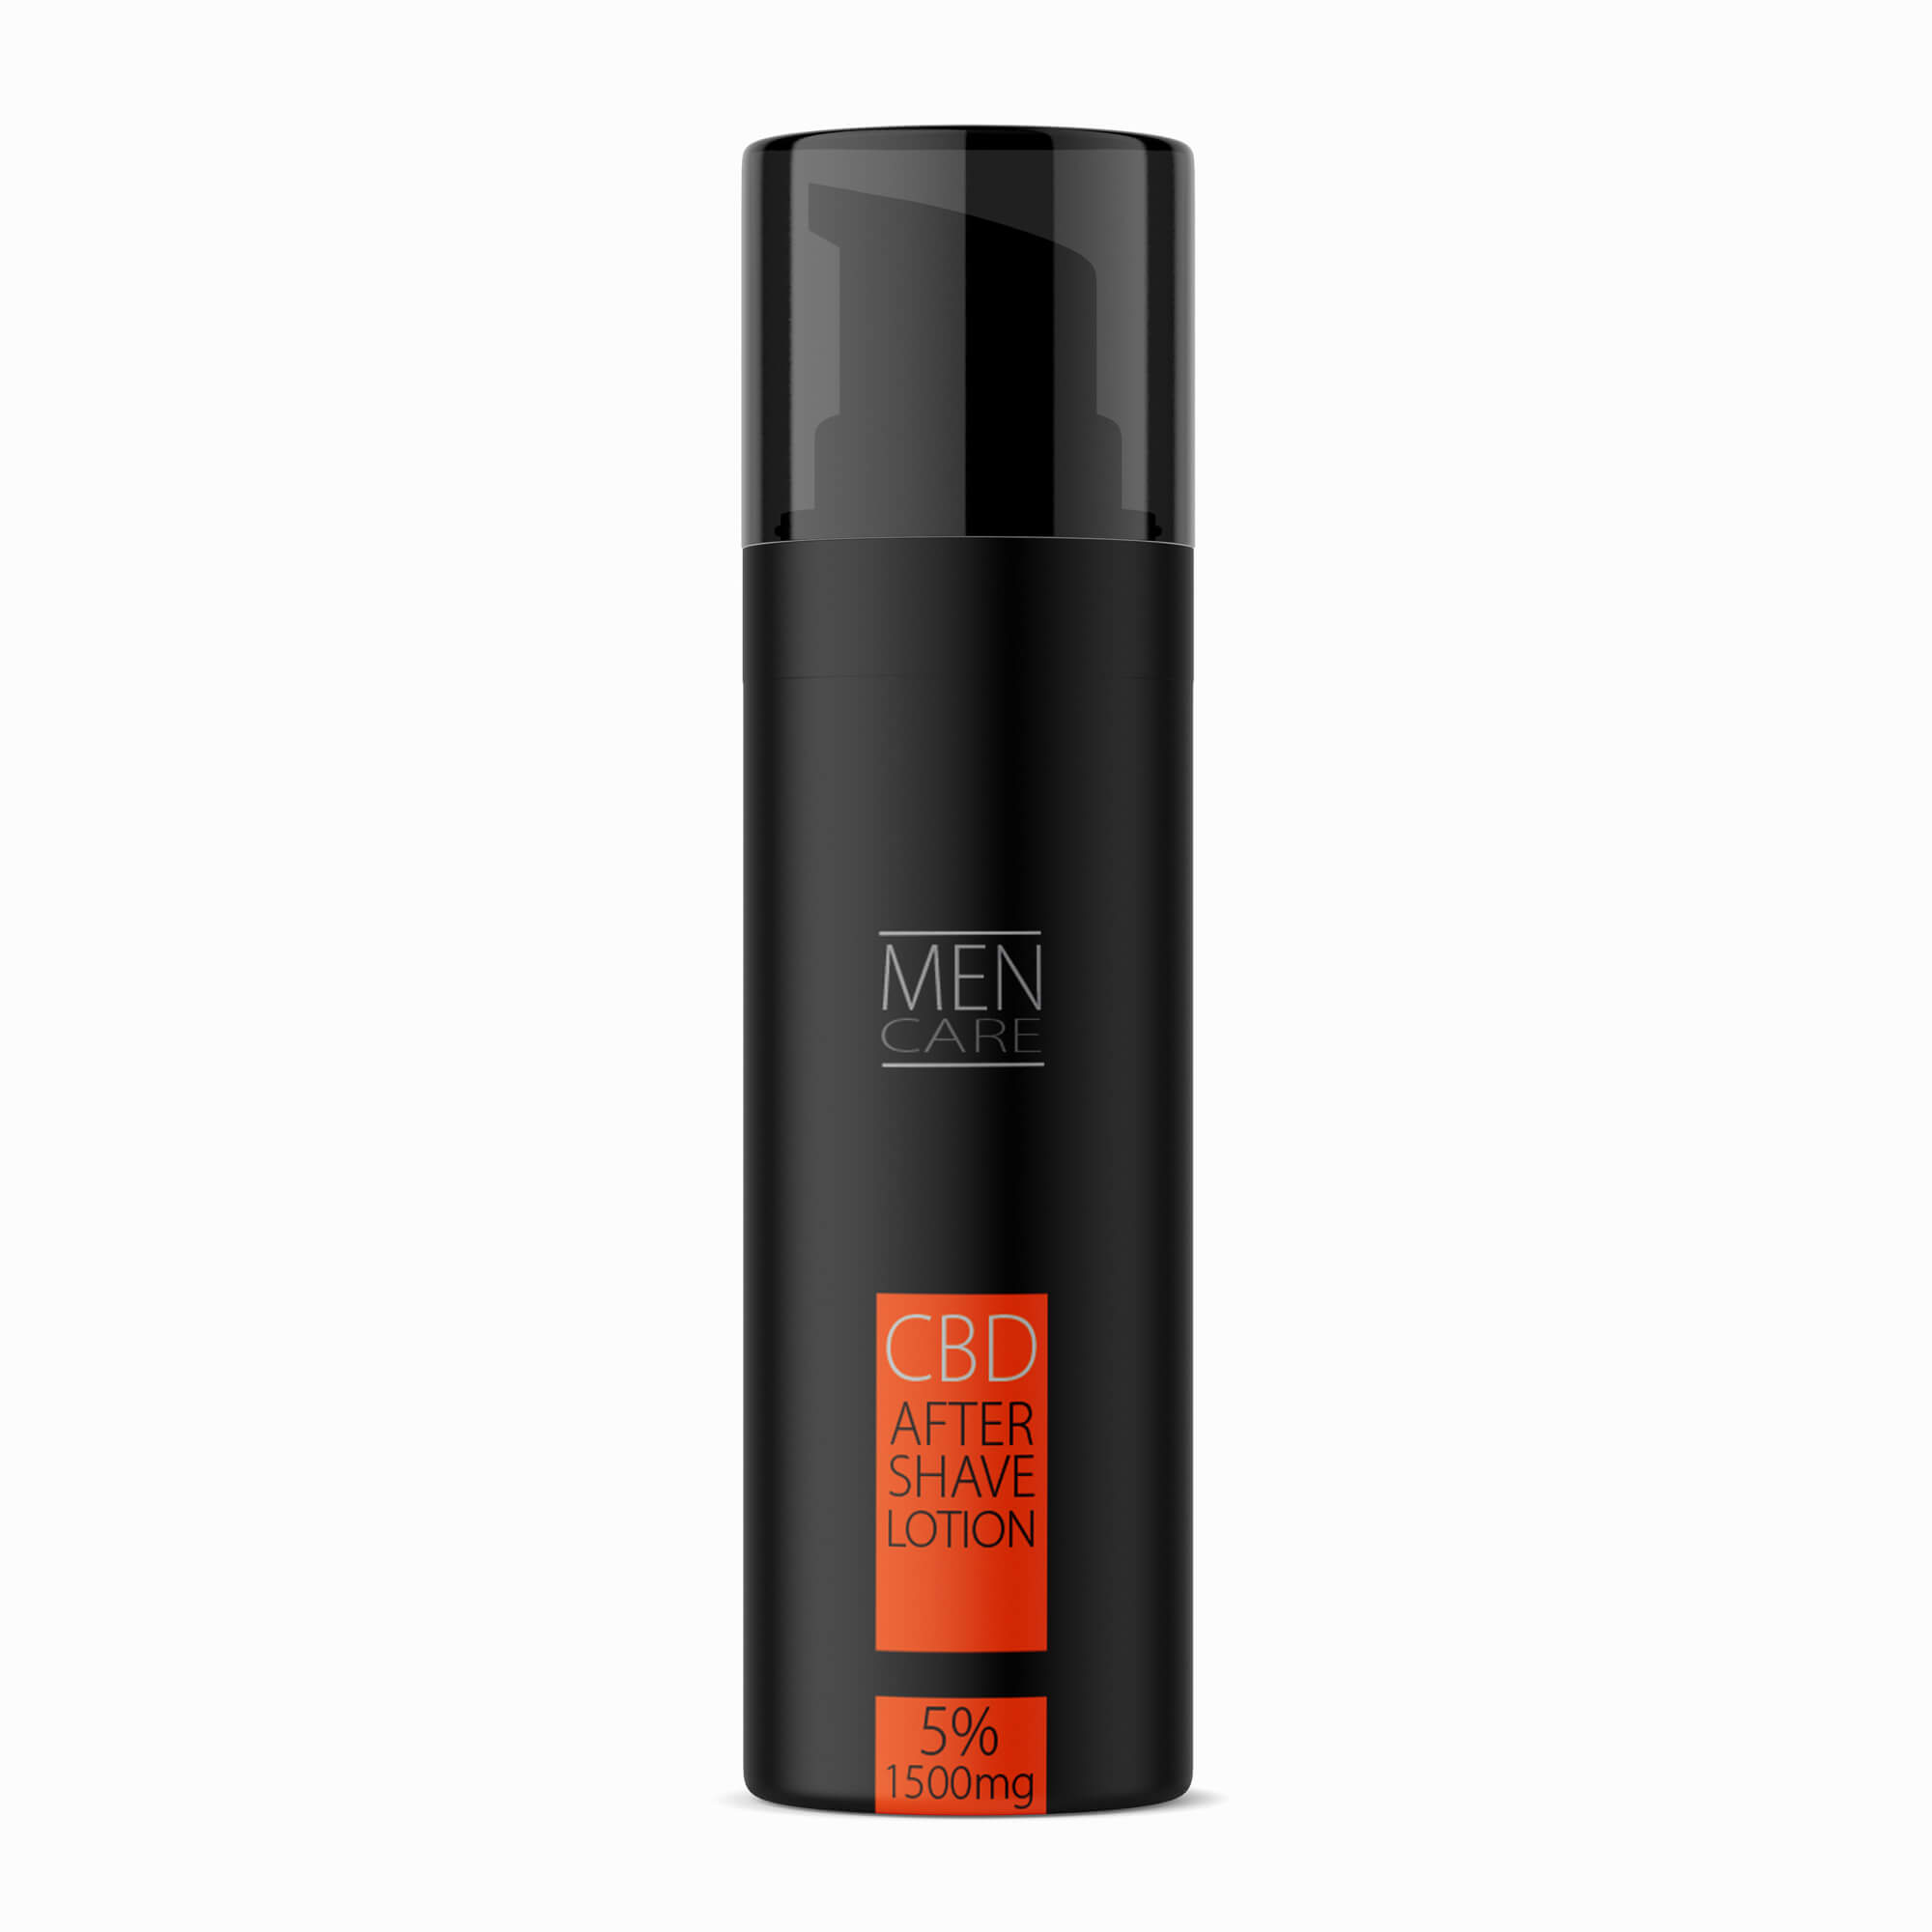 CBD-Aftershave-Lotion 5%